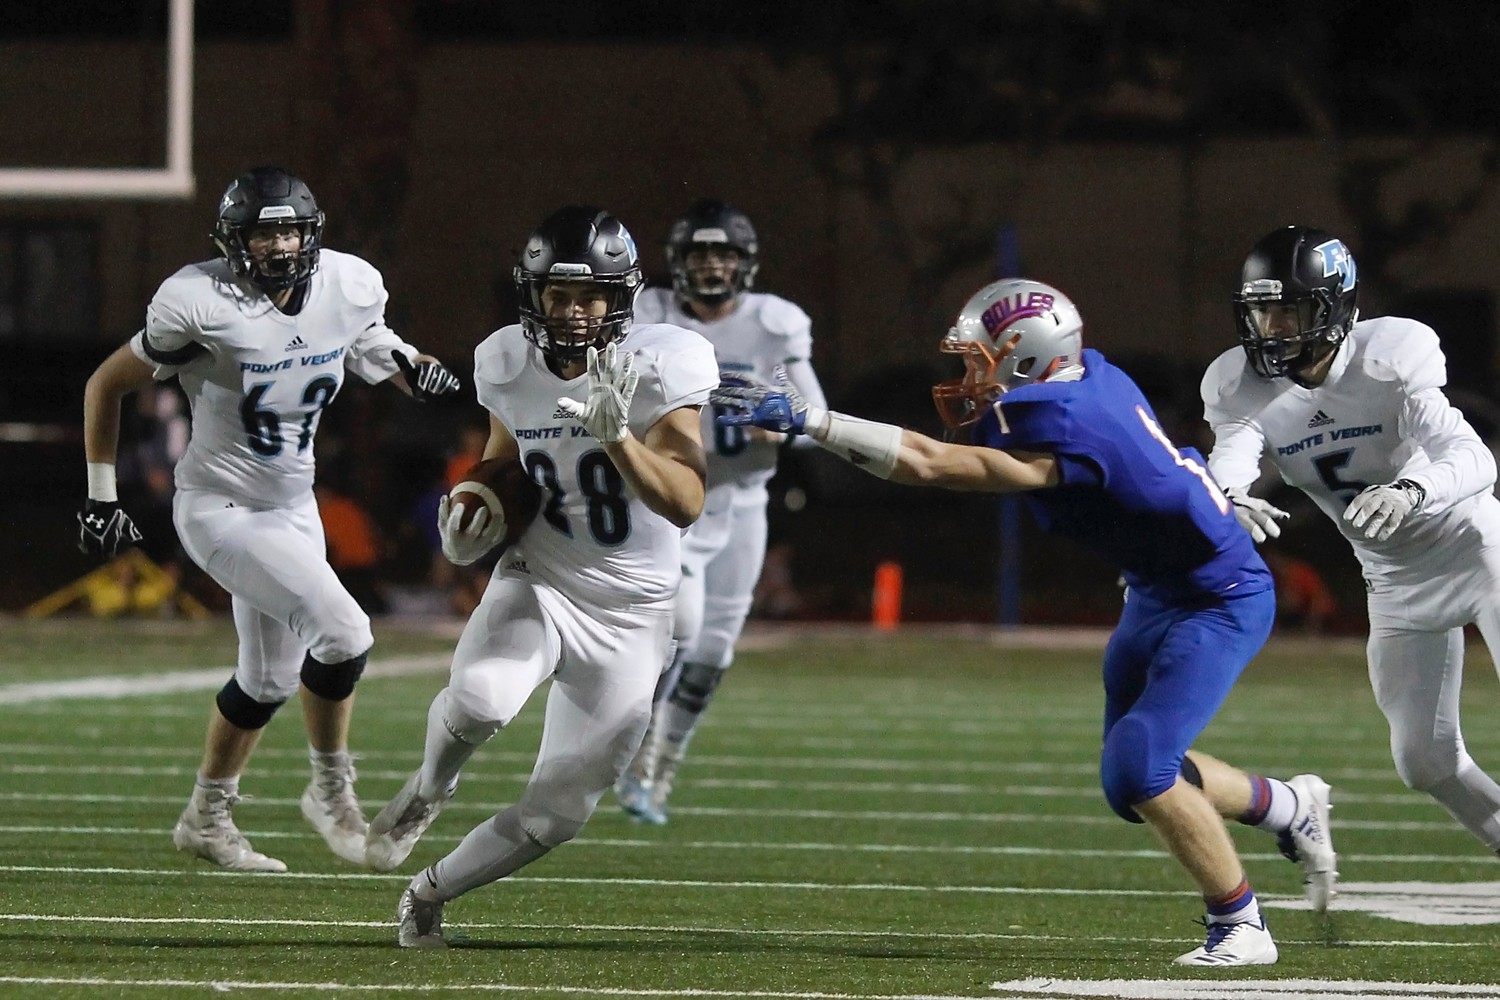 Collin Magill runs for 10 yards against Bolles.